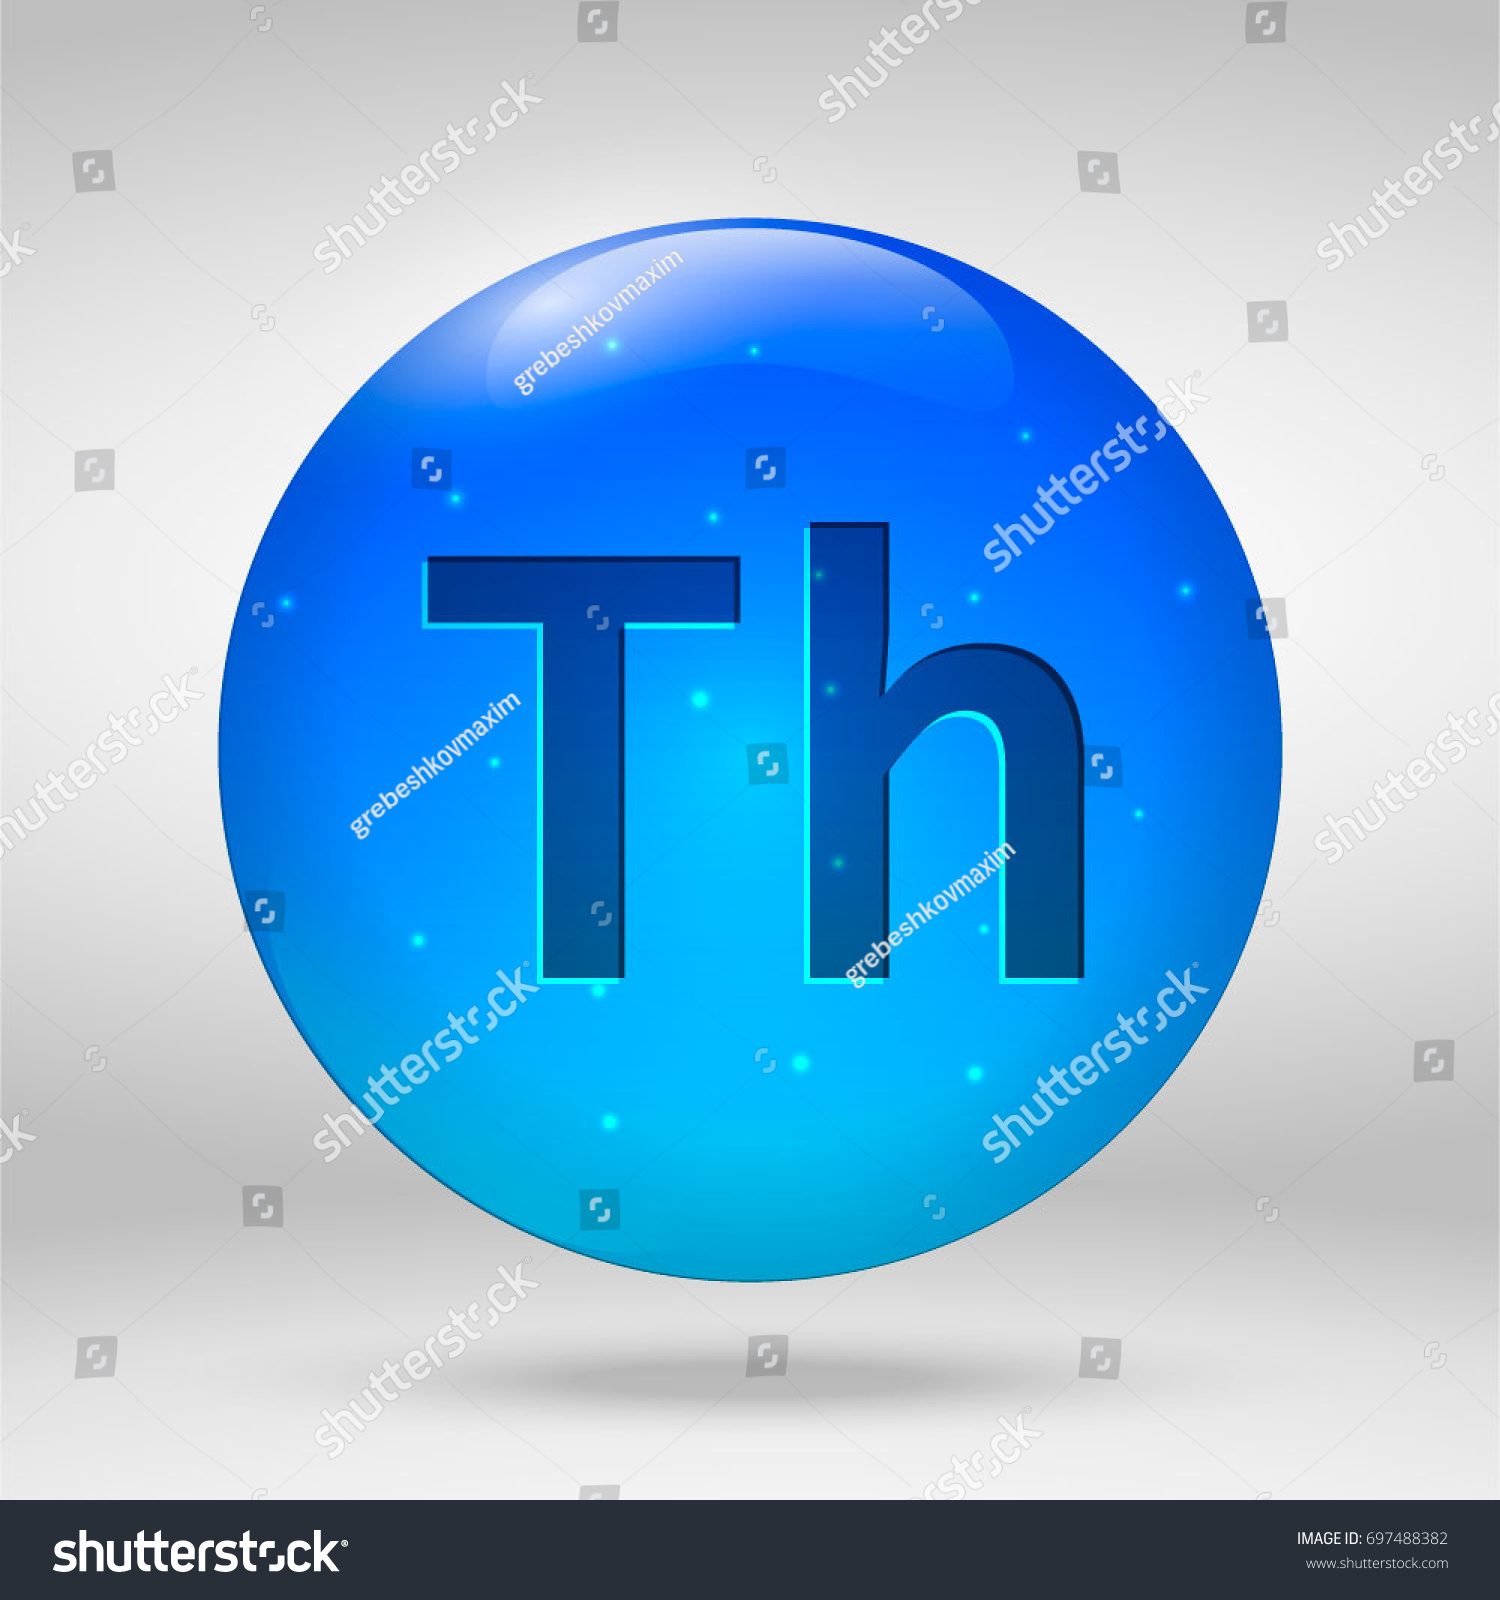 26th element periodic table images periodic table images 14th element periodic table image collections periodic table images 14th element periodic table image collections periodic gamestrikefo Image collections